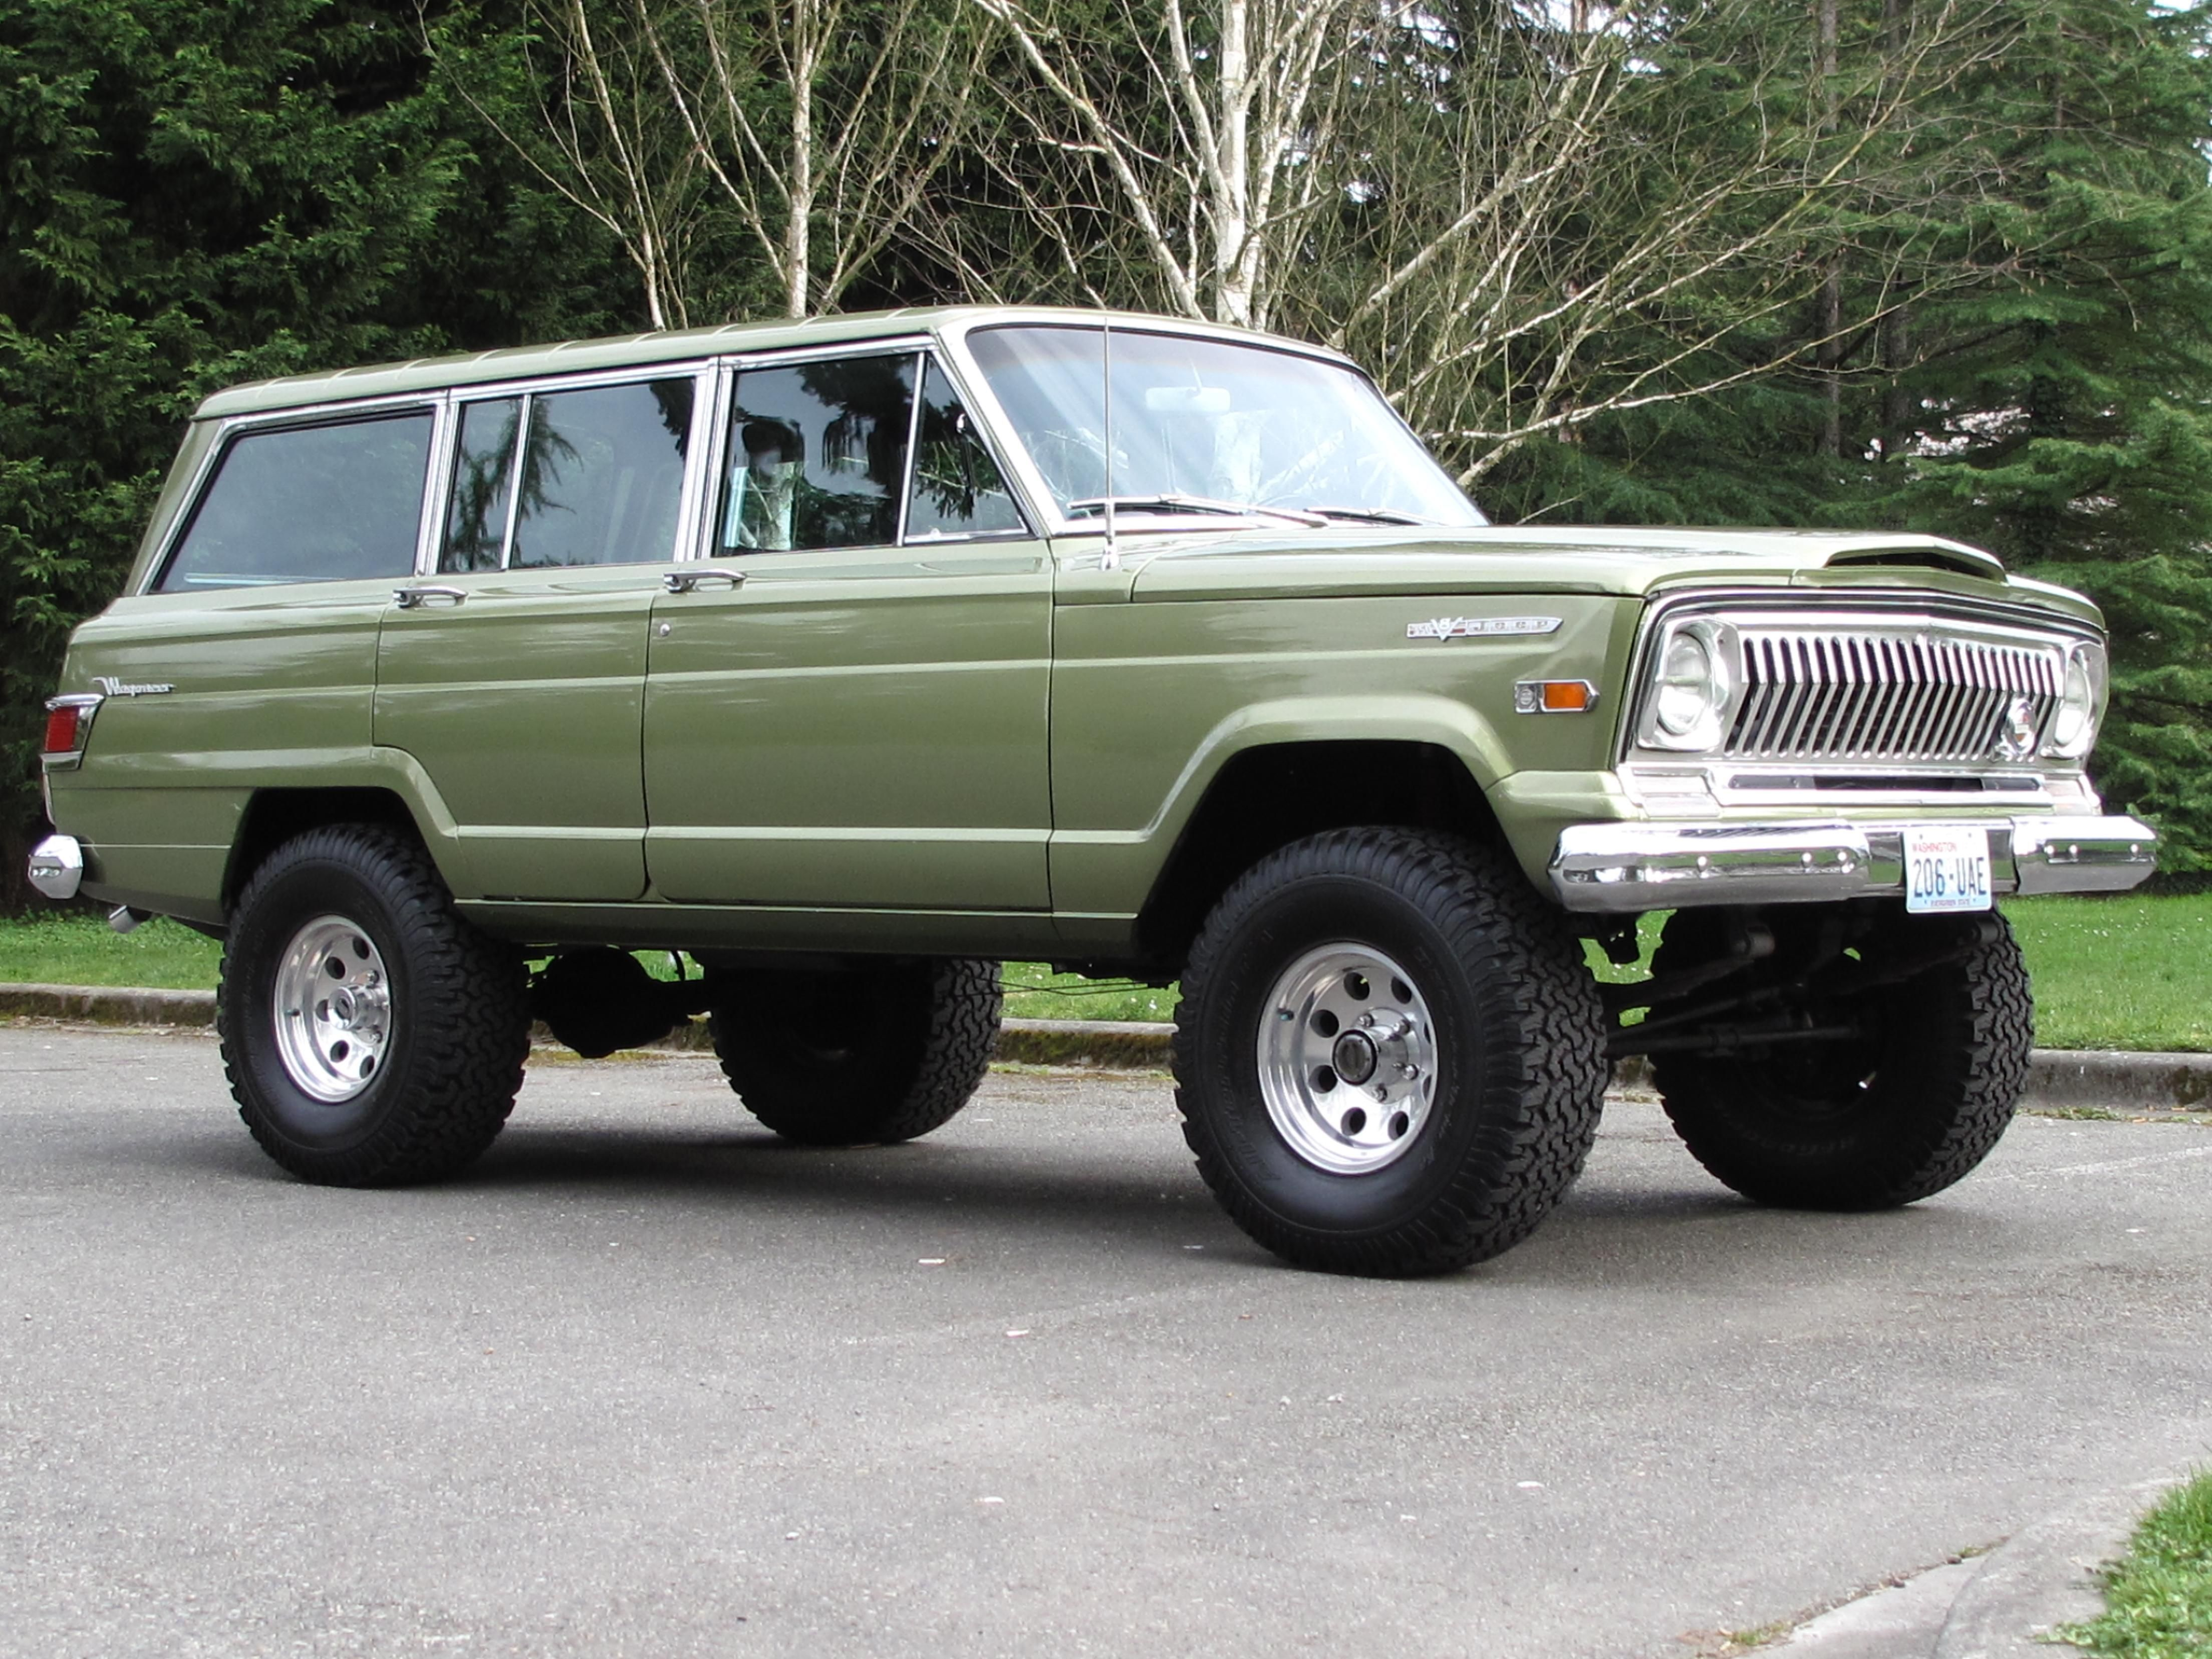 check out customized 70jeep s 1970 jeep wagoneer photos parts specs modification for sale information and follow 70jeep in seattle wa for any latest  [ 4416 x 3312 Pixel ]